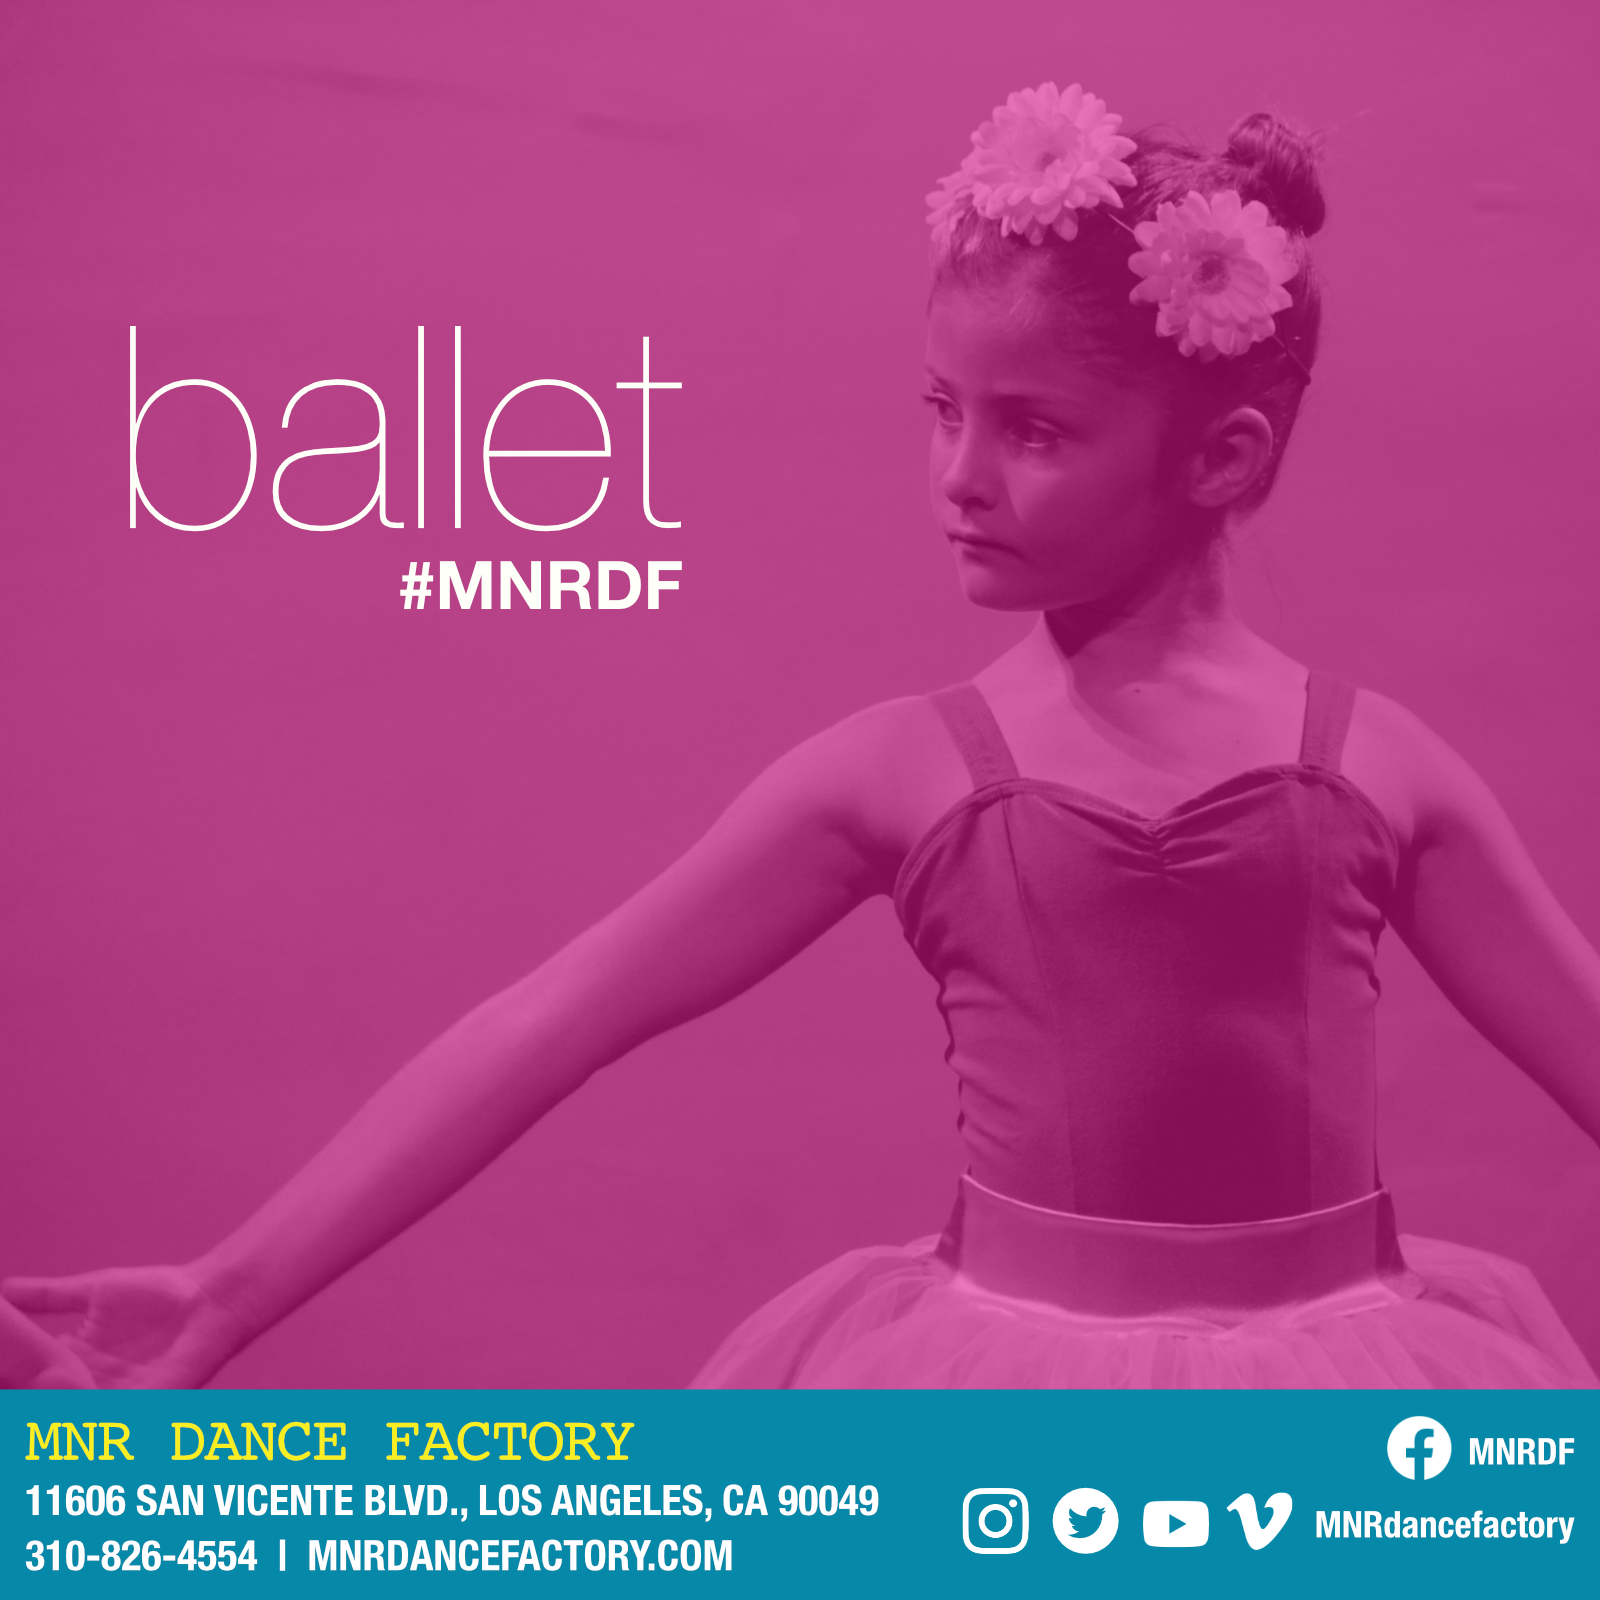 Ballet - Ballet is the basis of all dance styles and classes will focus on ballet technique, body alignment and musicality through movement. The ballet program at MNR DF is taught by a faculty of extremely gifted and knowledgable ballet masters Ina Haybaek-Rogers, Alina Bolshekova, and Brittany O'Connor. The faculty combines a working knowledge of the Checchetti, Vaganova and RAD methods to create well balanced and cohesive classes.